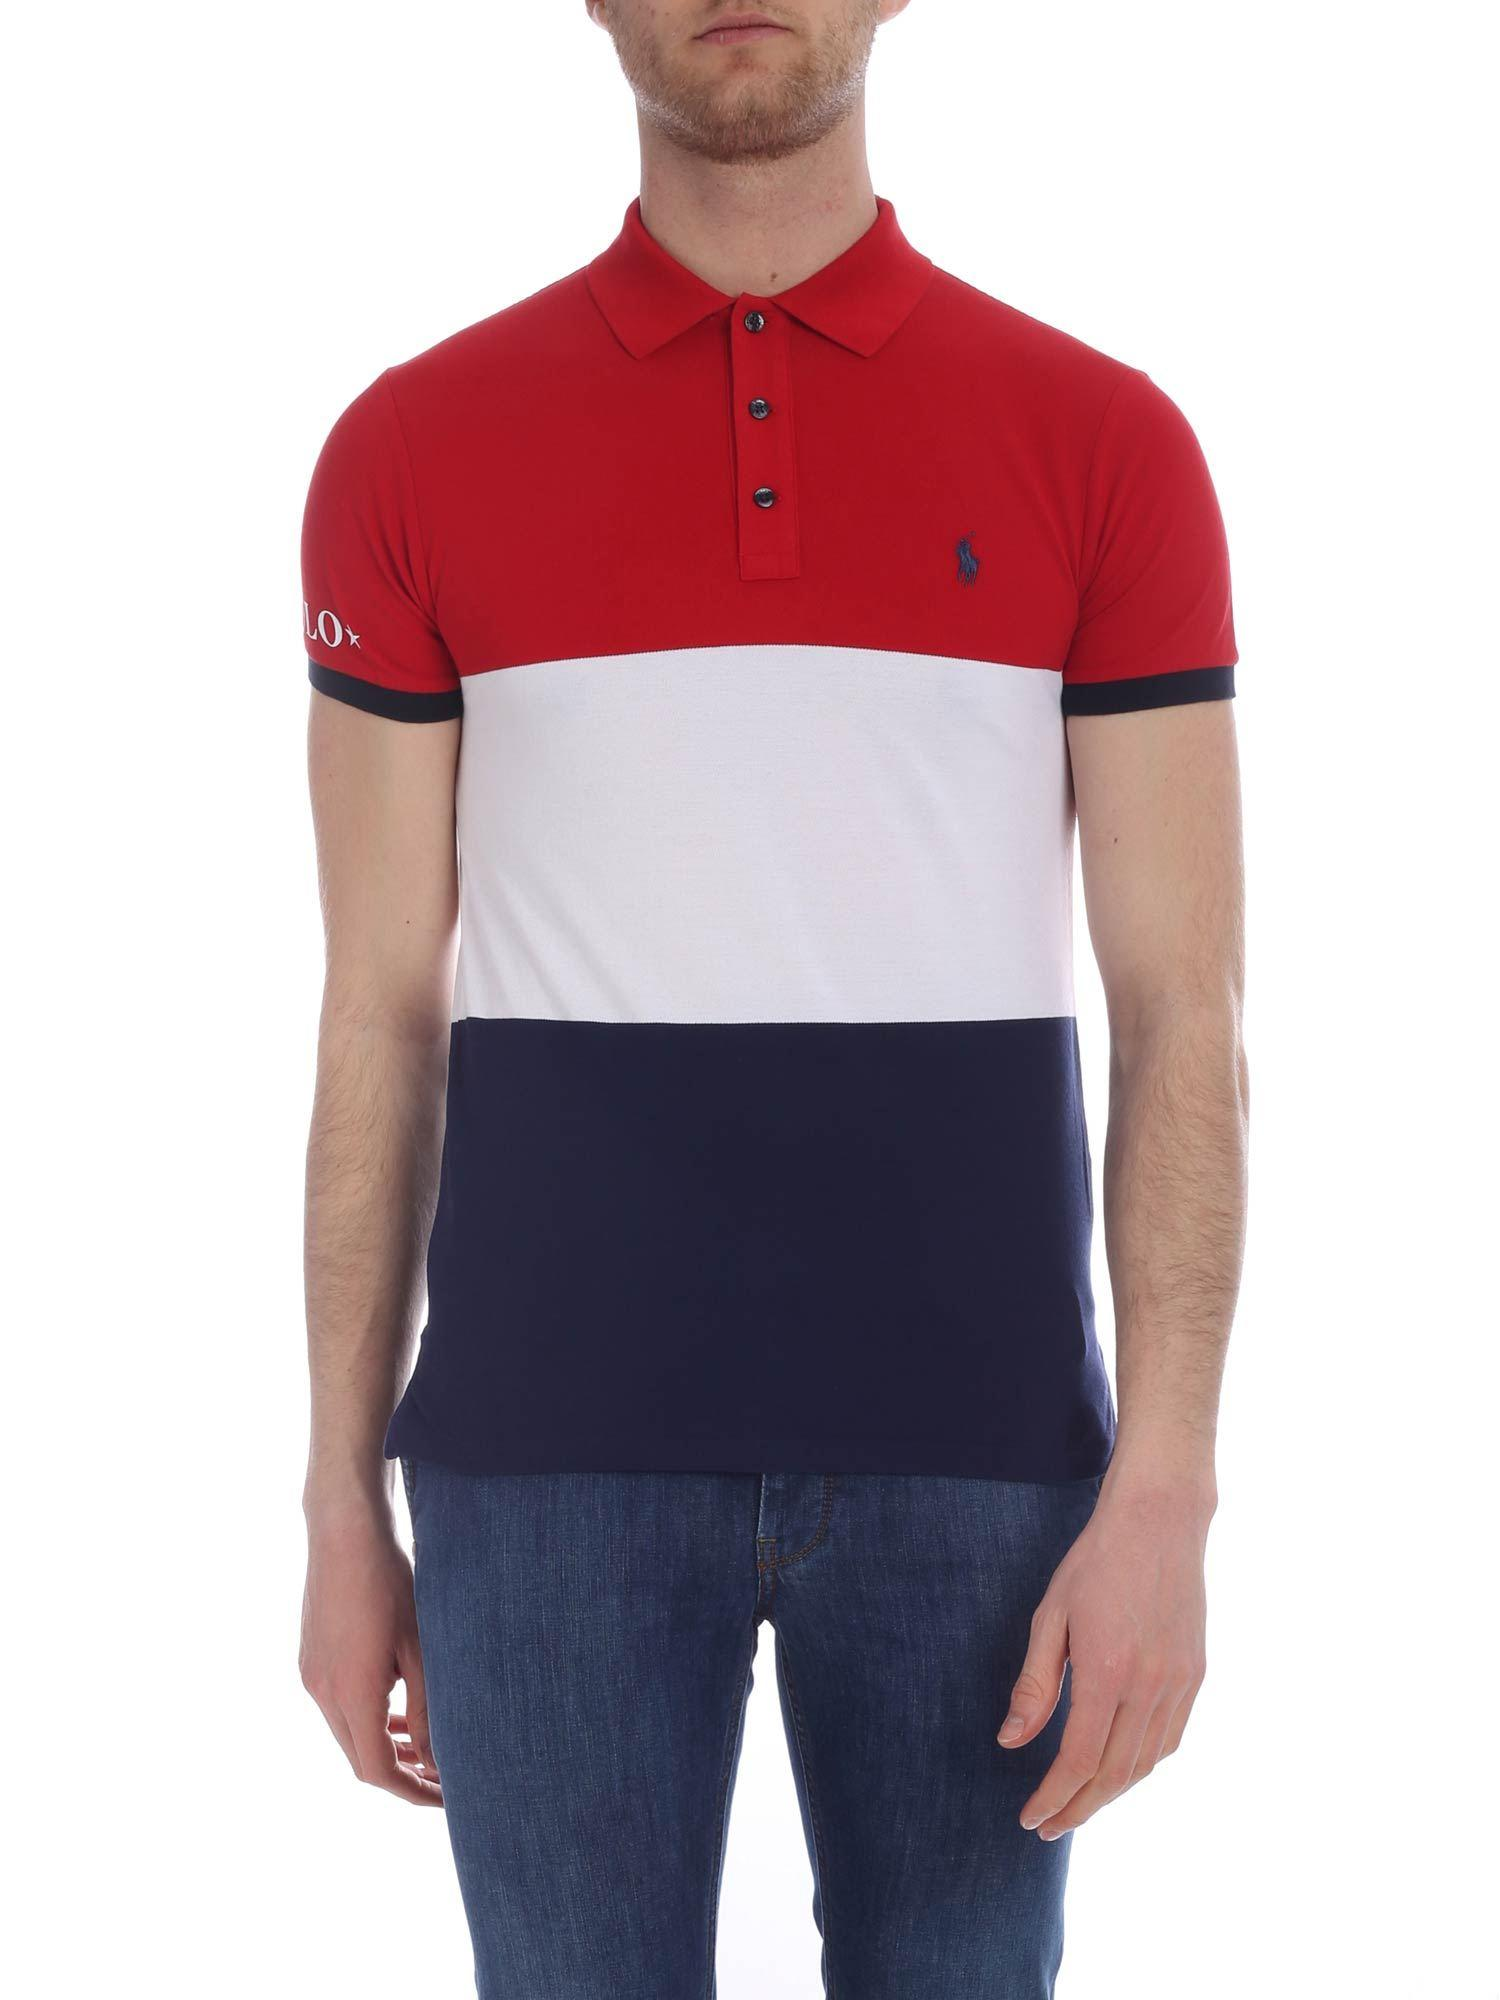 sapore dolce Incremento Ritenere  Polo Ralph Lauren Cotton Red, White And Blue Polo for Men - Lyst